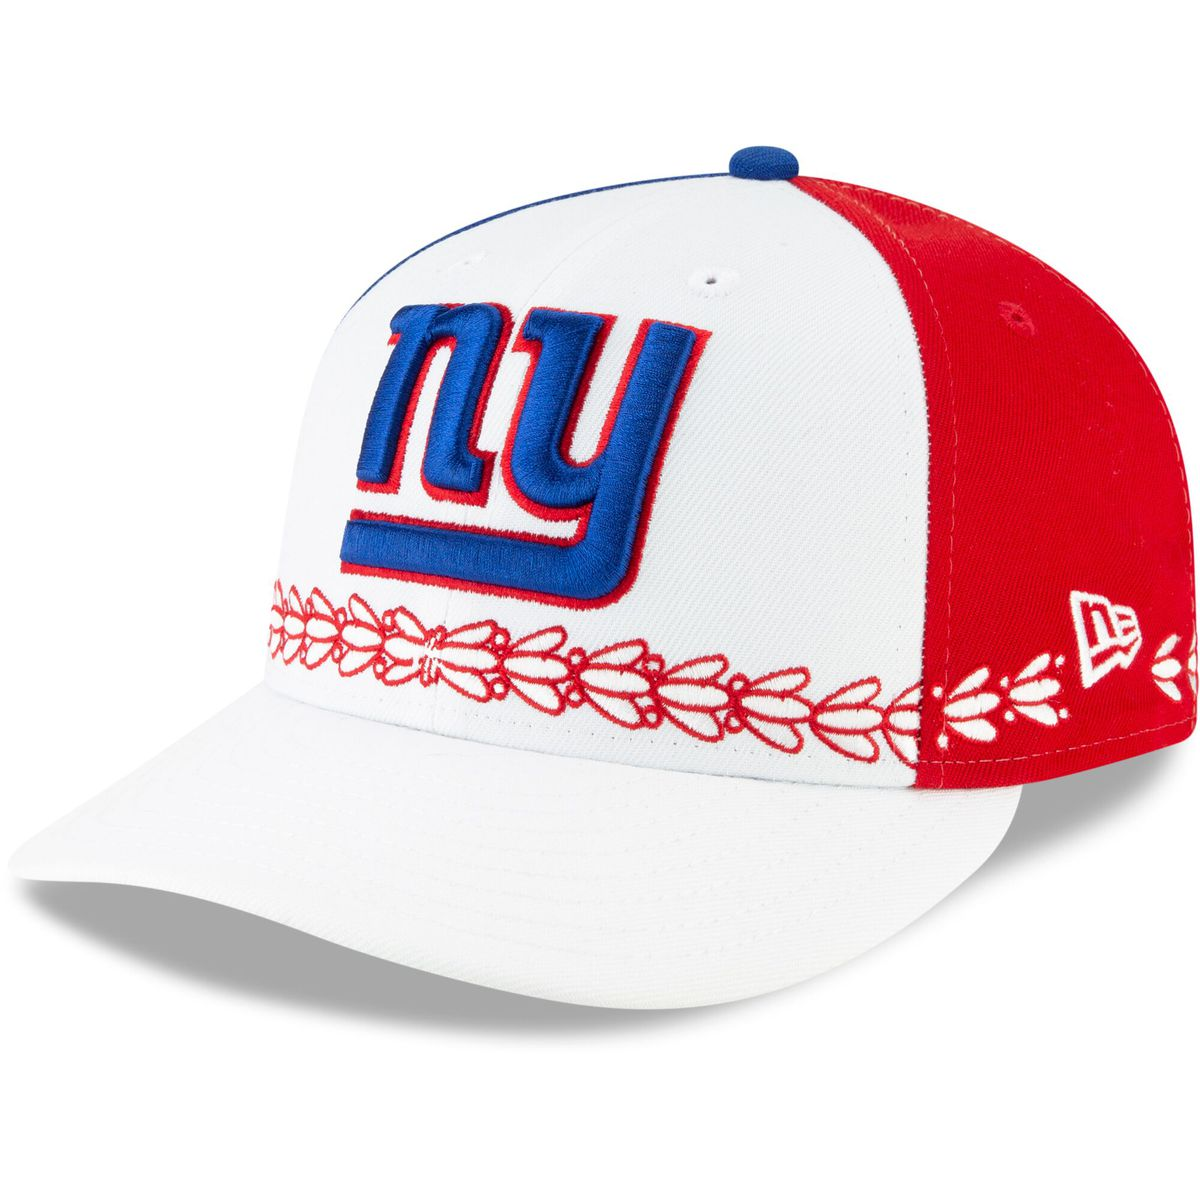 online retailer ccb10 36278 New Era On Stage Official Low Profile 59FIFTY for  37.99 Fanatics